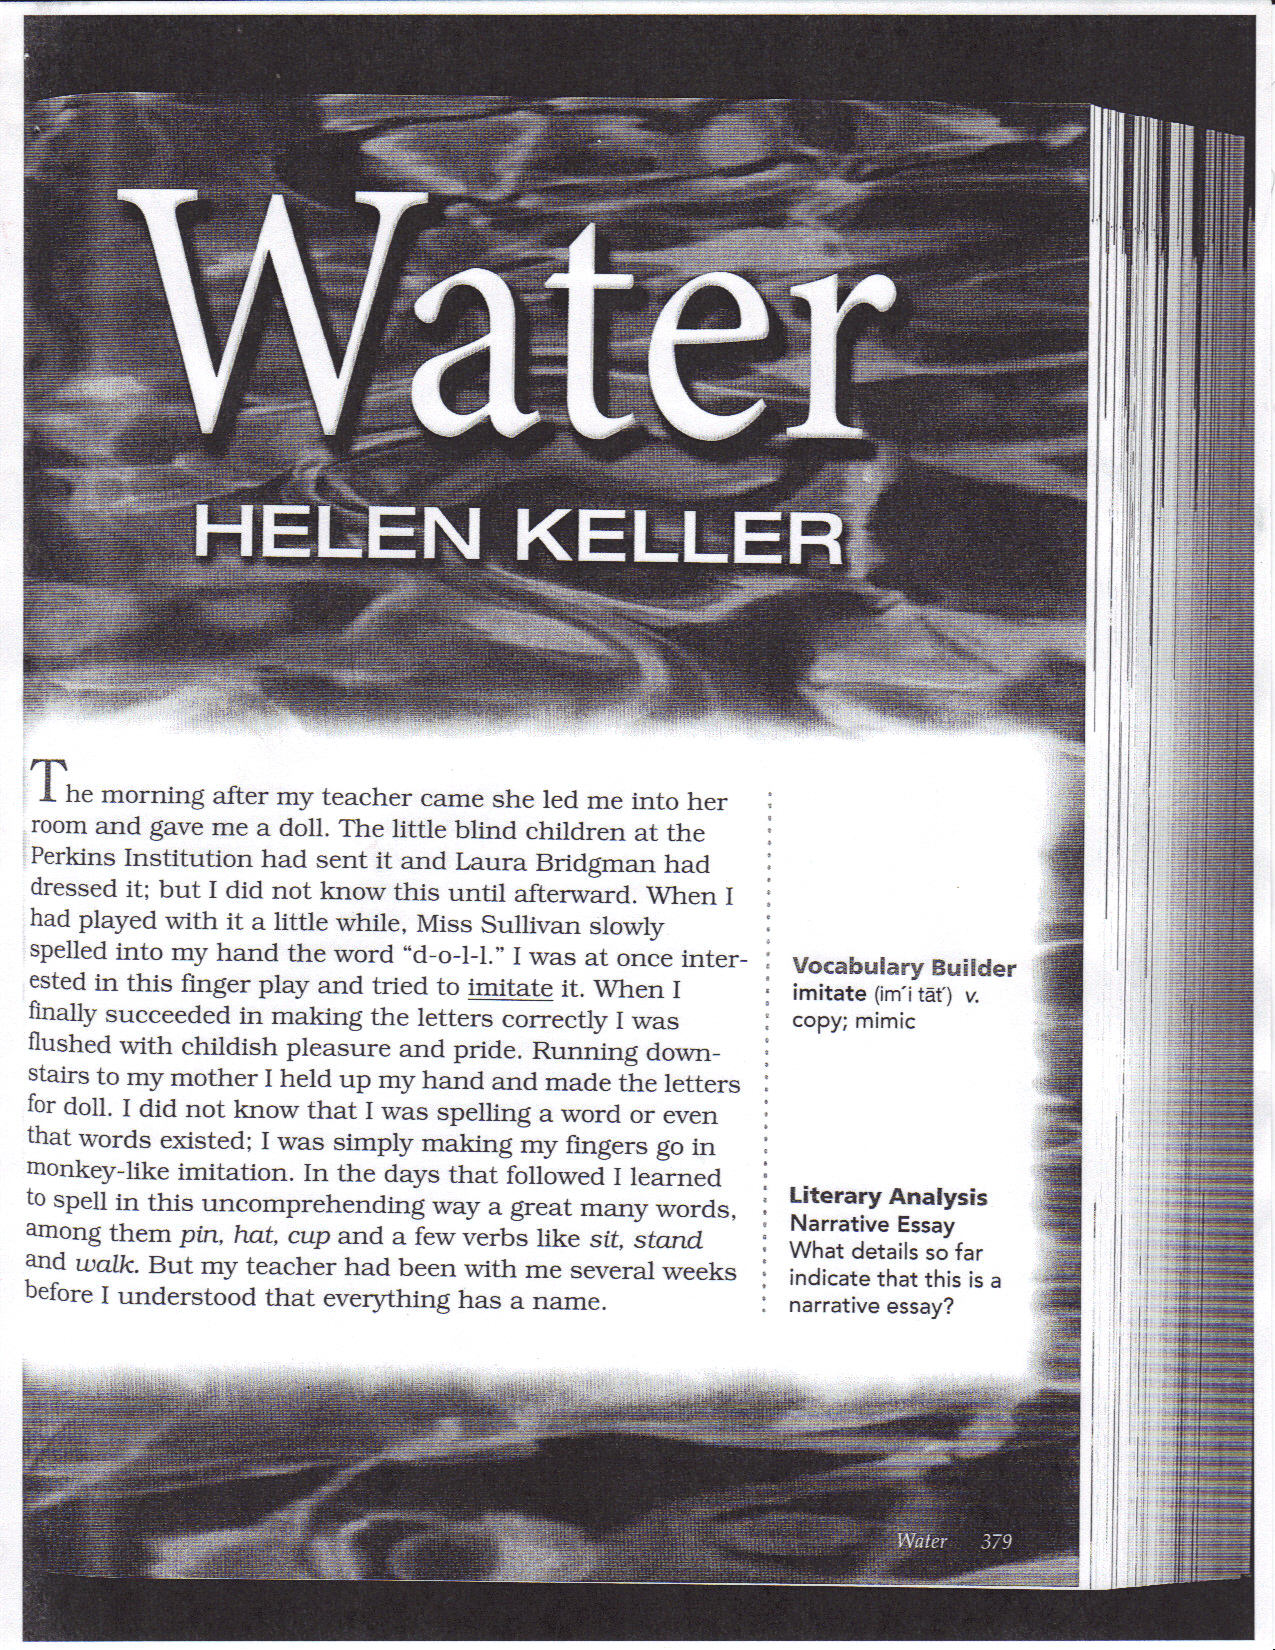 essay written by helen keller Essay on helen keller - if you want to find out how to make a amazing term paper, you need to study this get to know basic tips how to receive a plagiarism free themed dissertation from a.